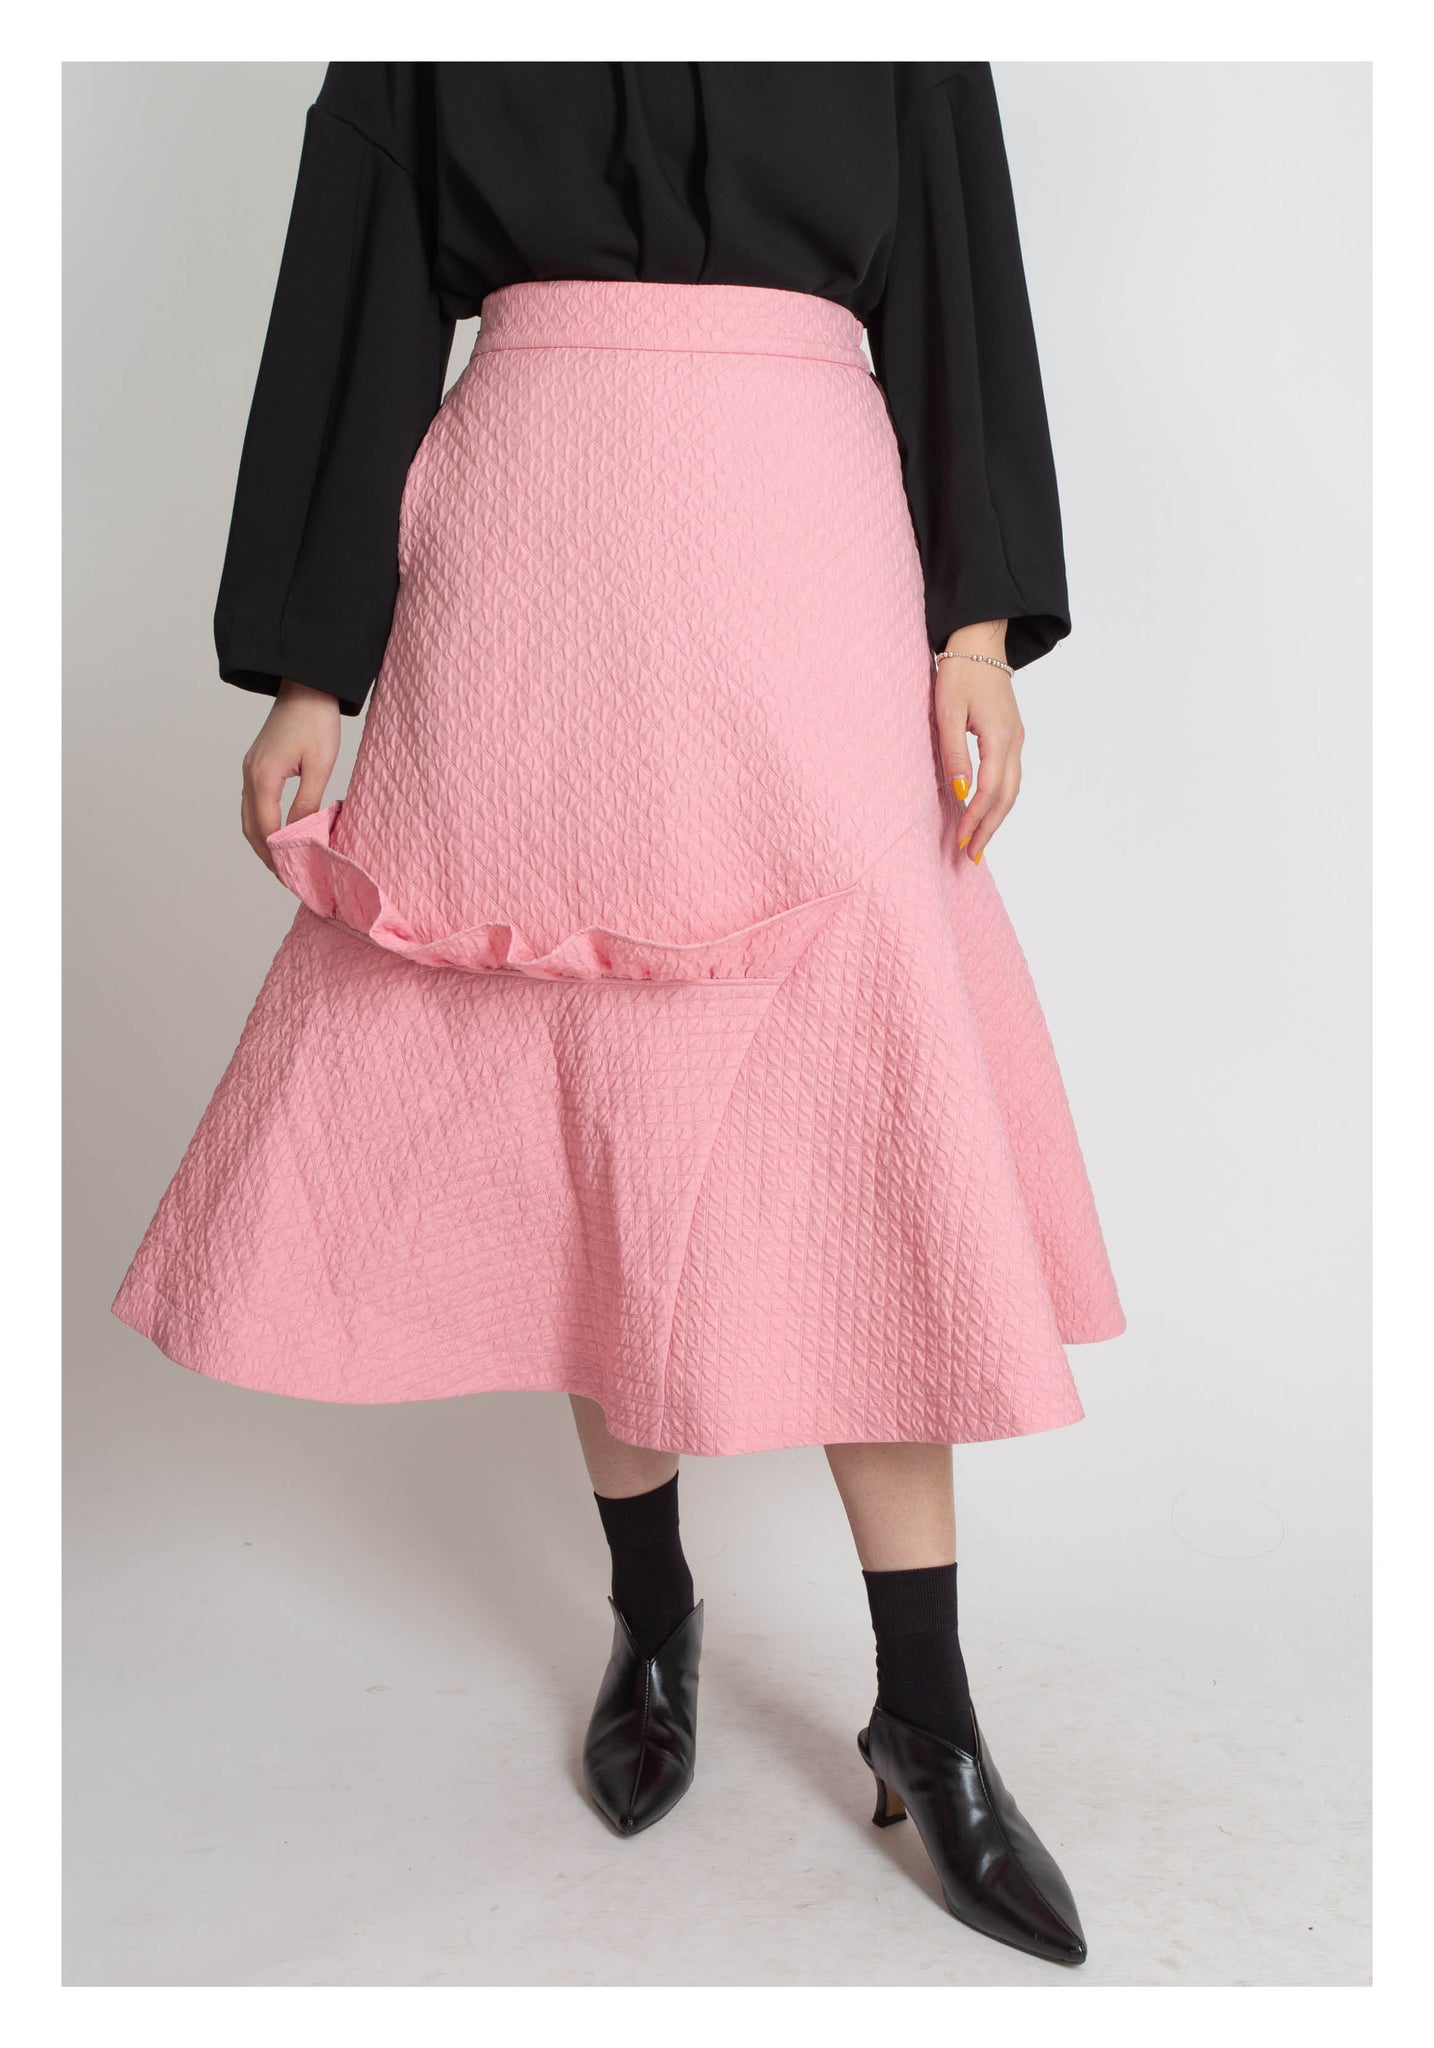 A Better Me Skirt Pink - whoami